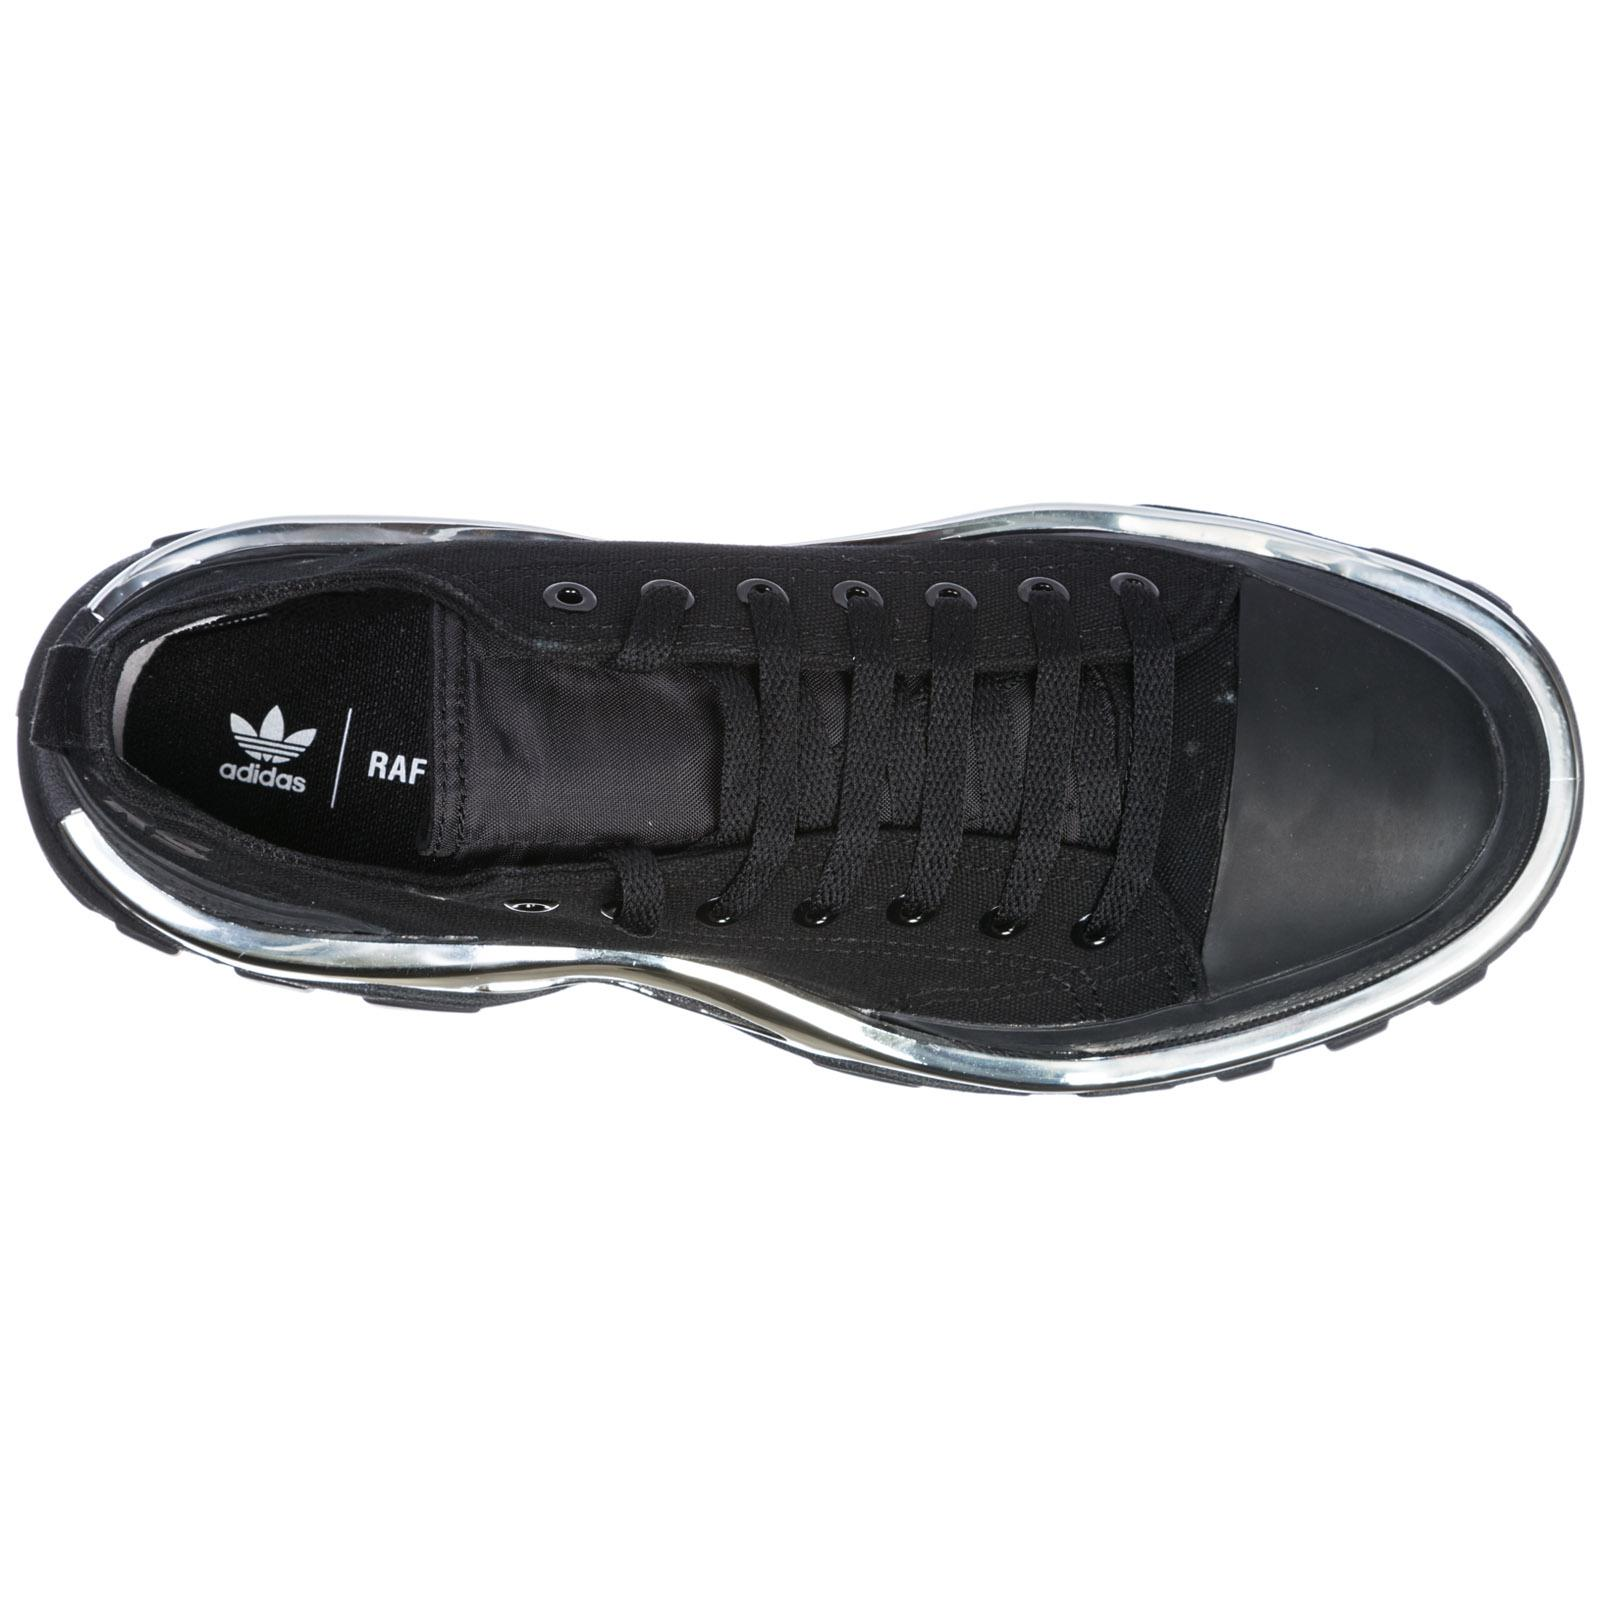 sports shoes 6f74d 3534f Adidas By Raf Simons - Black Shoes Trainers Sneakers Detroit Runner for Men  - Lyst. View fullscreen